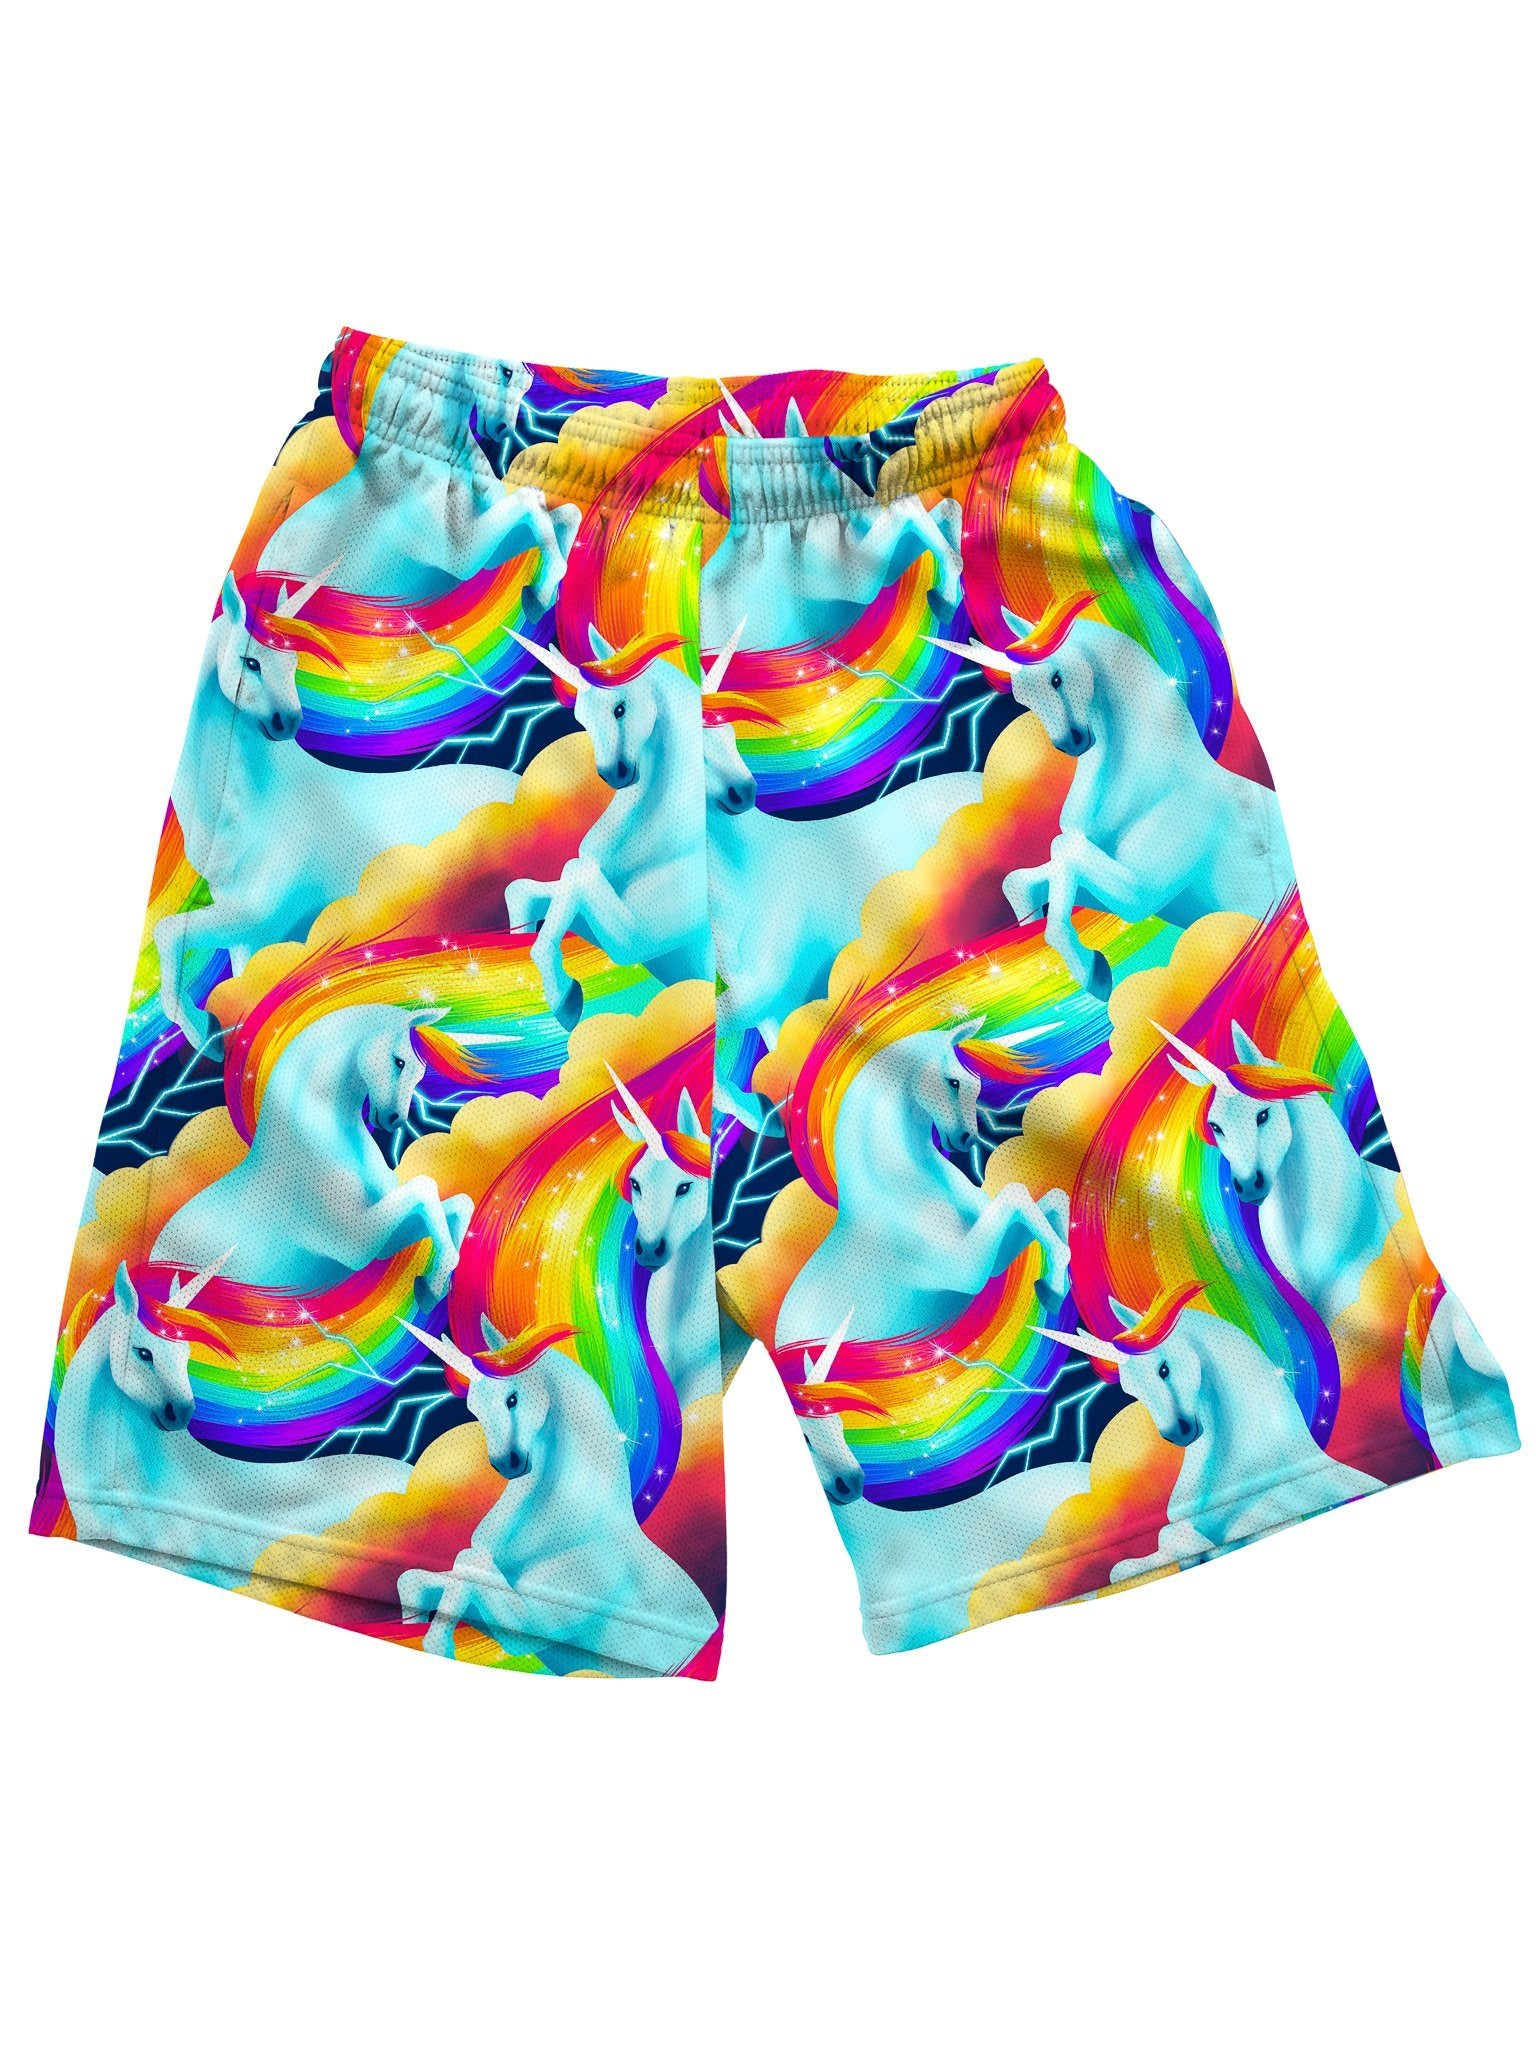 Unicorn Sherbet Shorts Mens Shorts Electro Threads